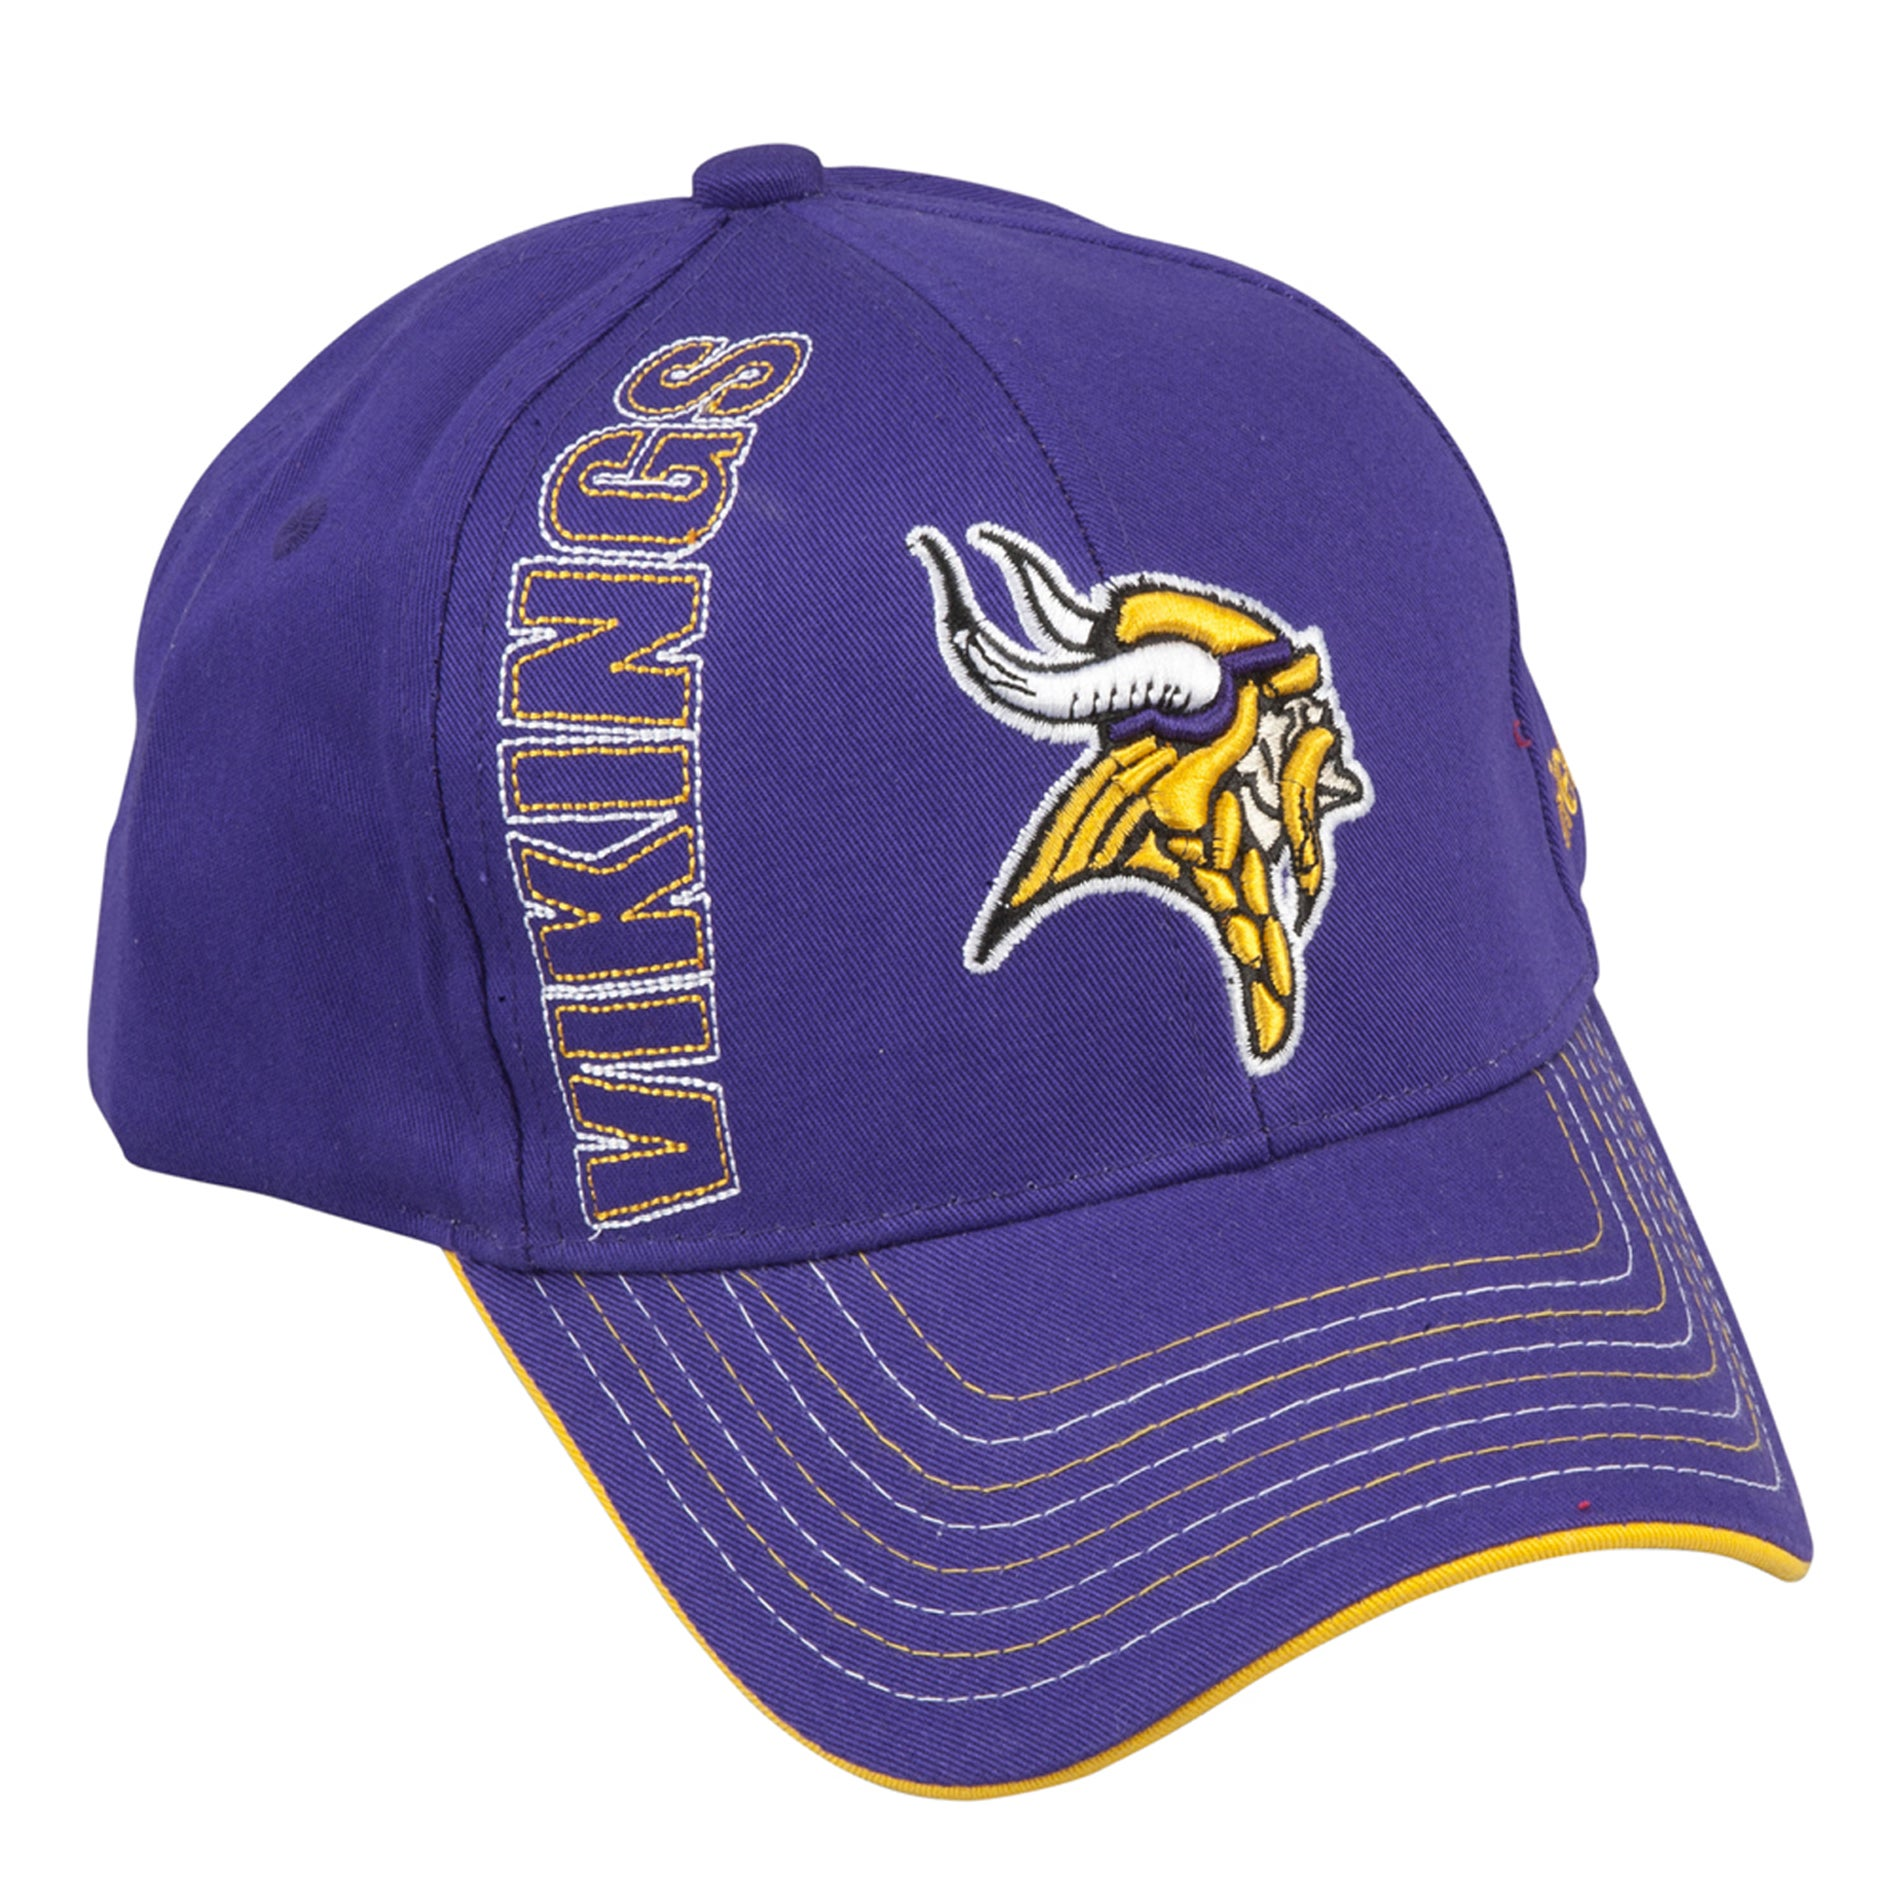 Reebok Minnesota Vikings Yardage Hat